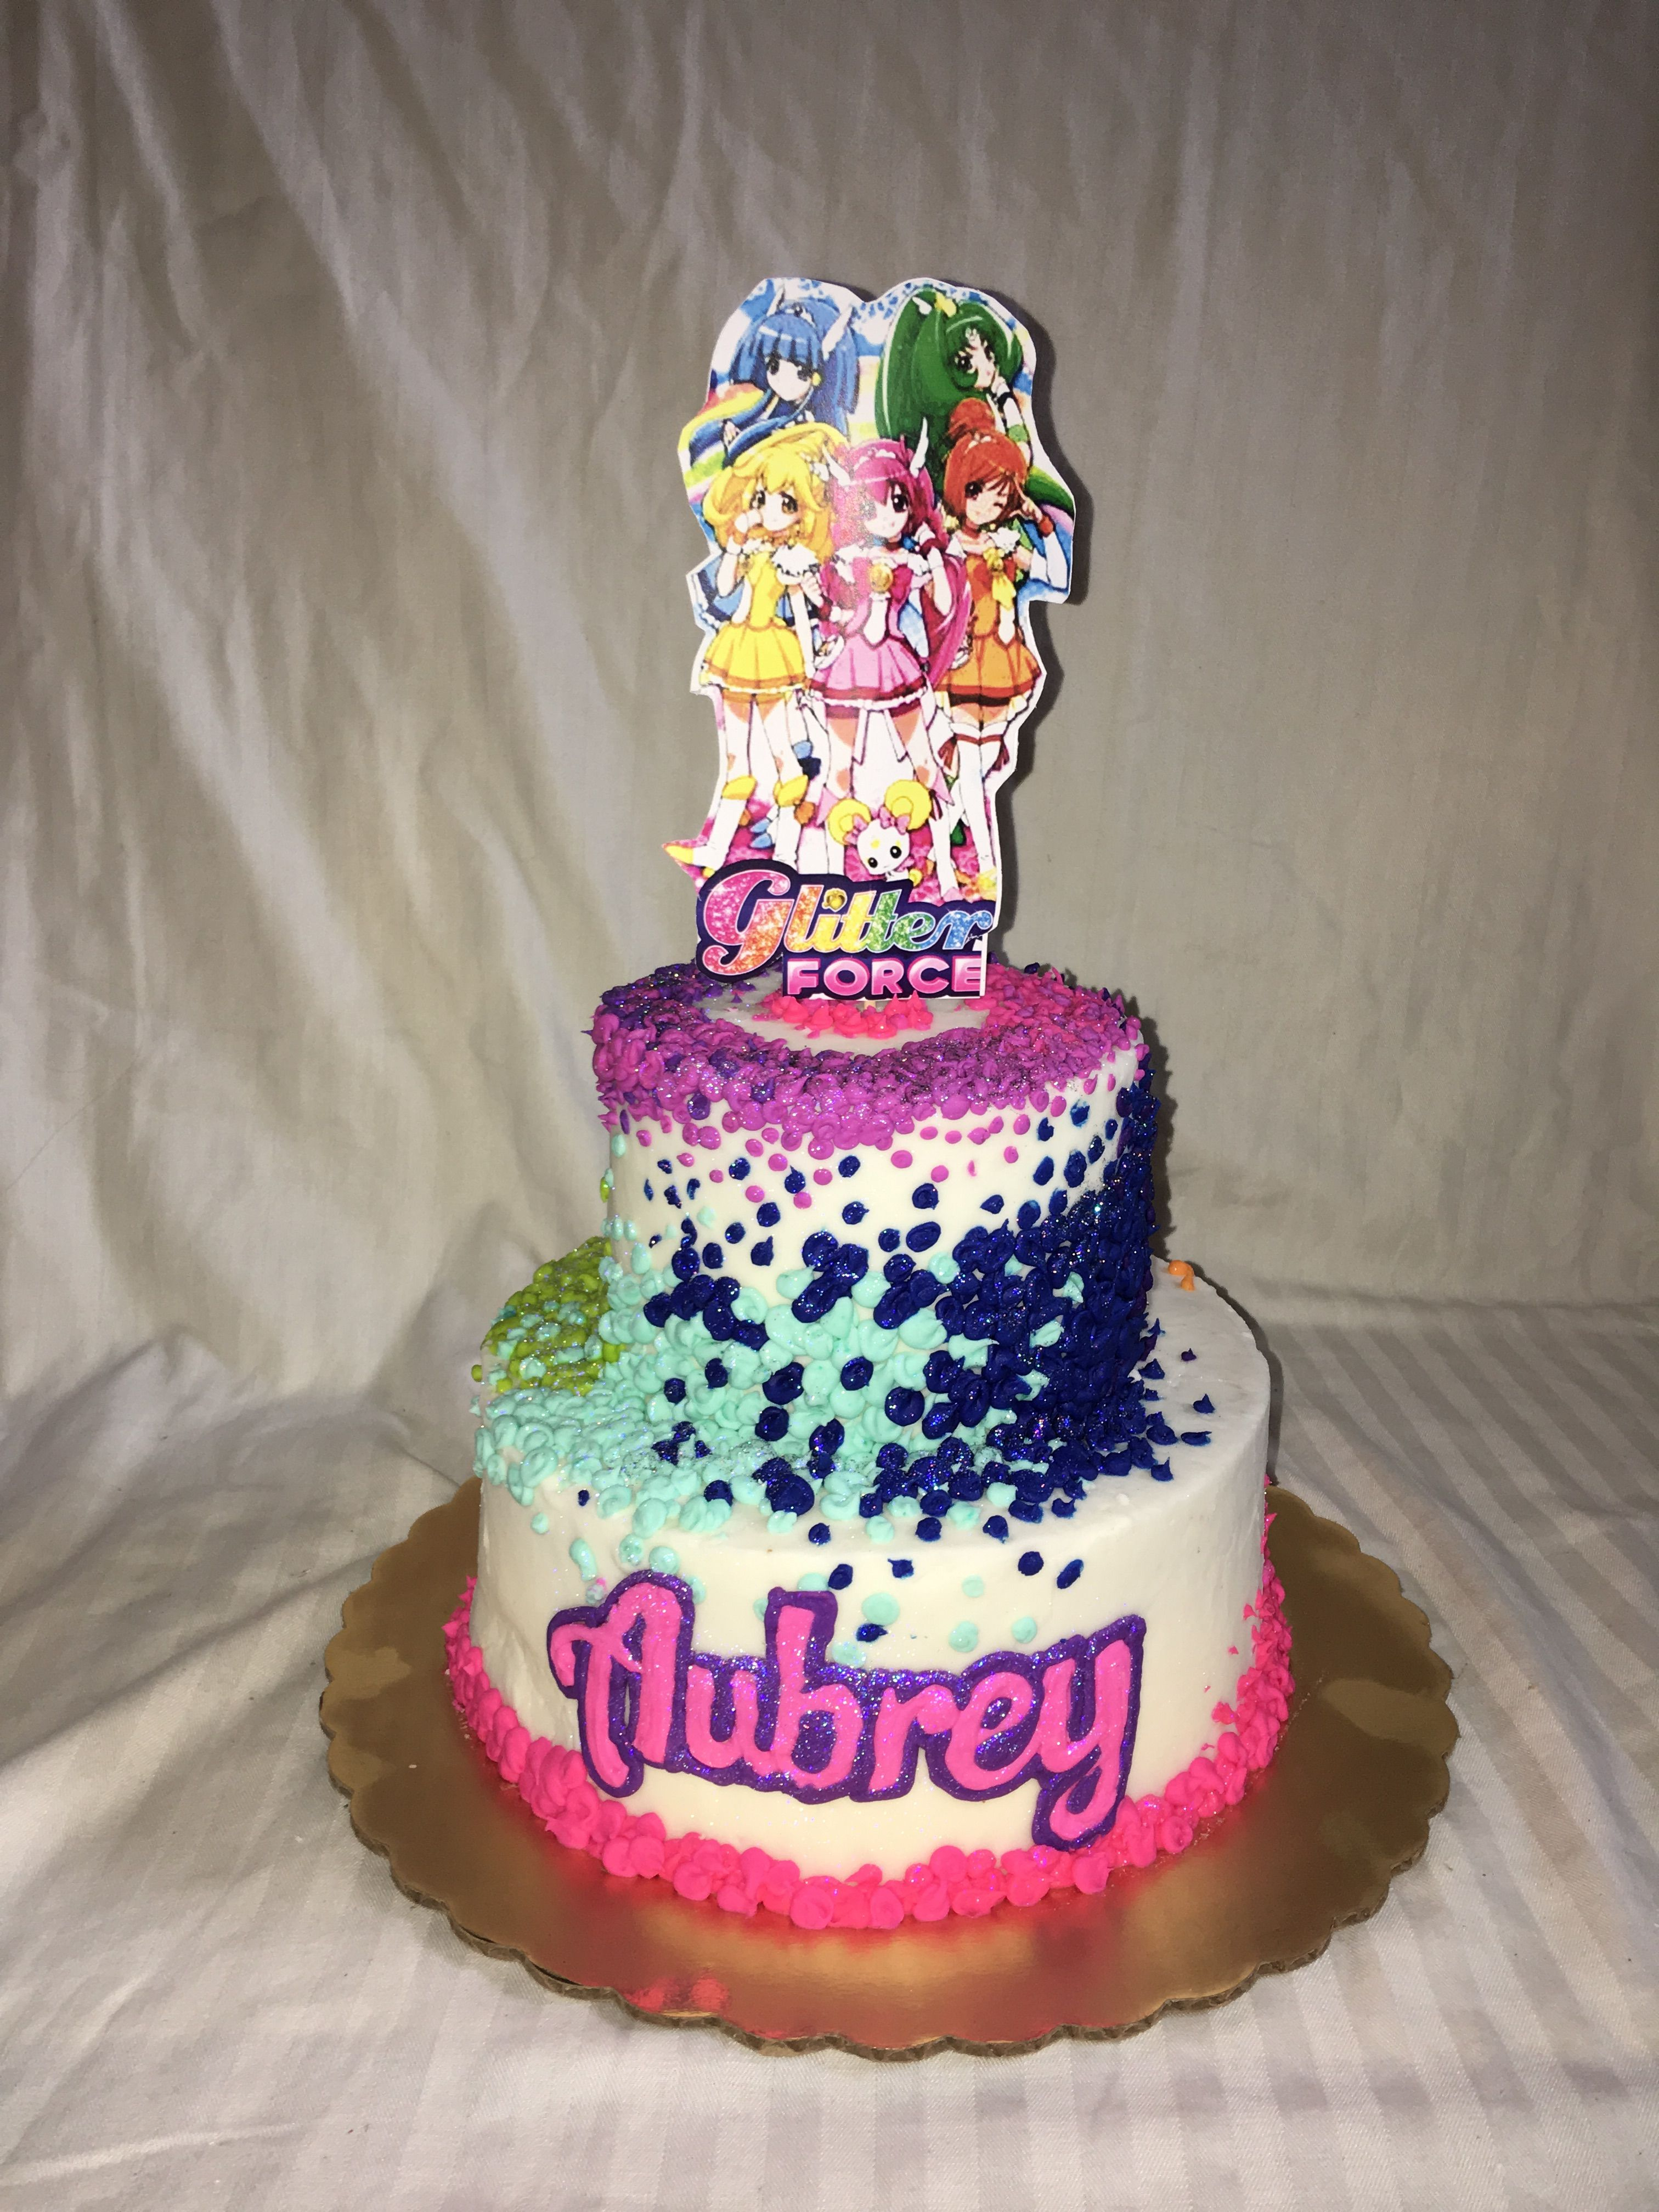 Pin By Inphinity Designs On Cake Designs Pinterest Cake Design